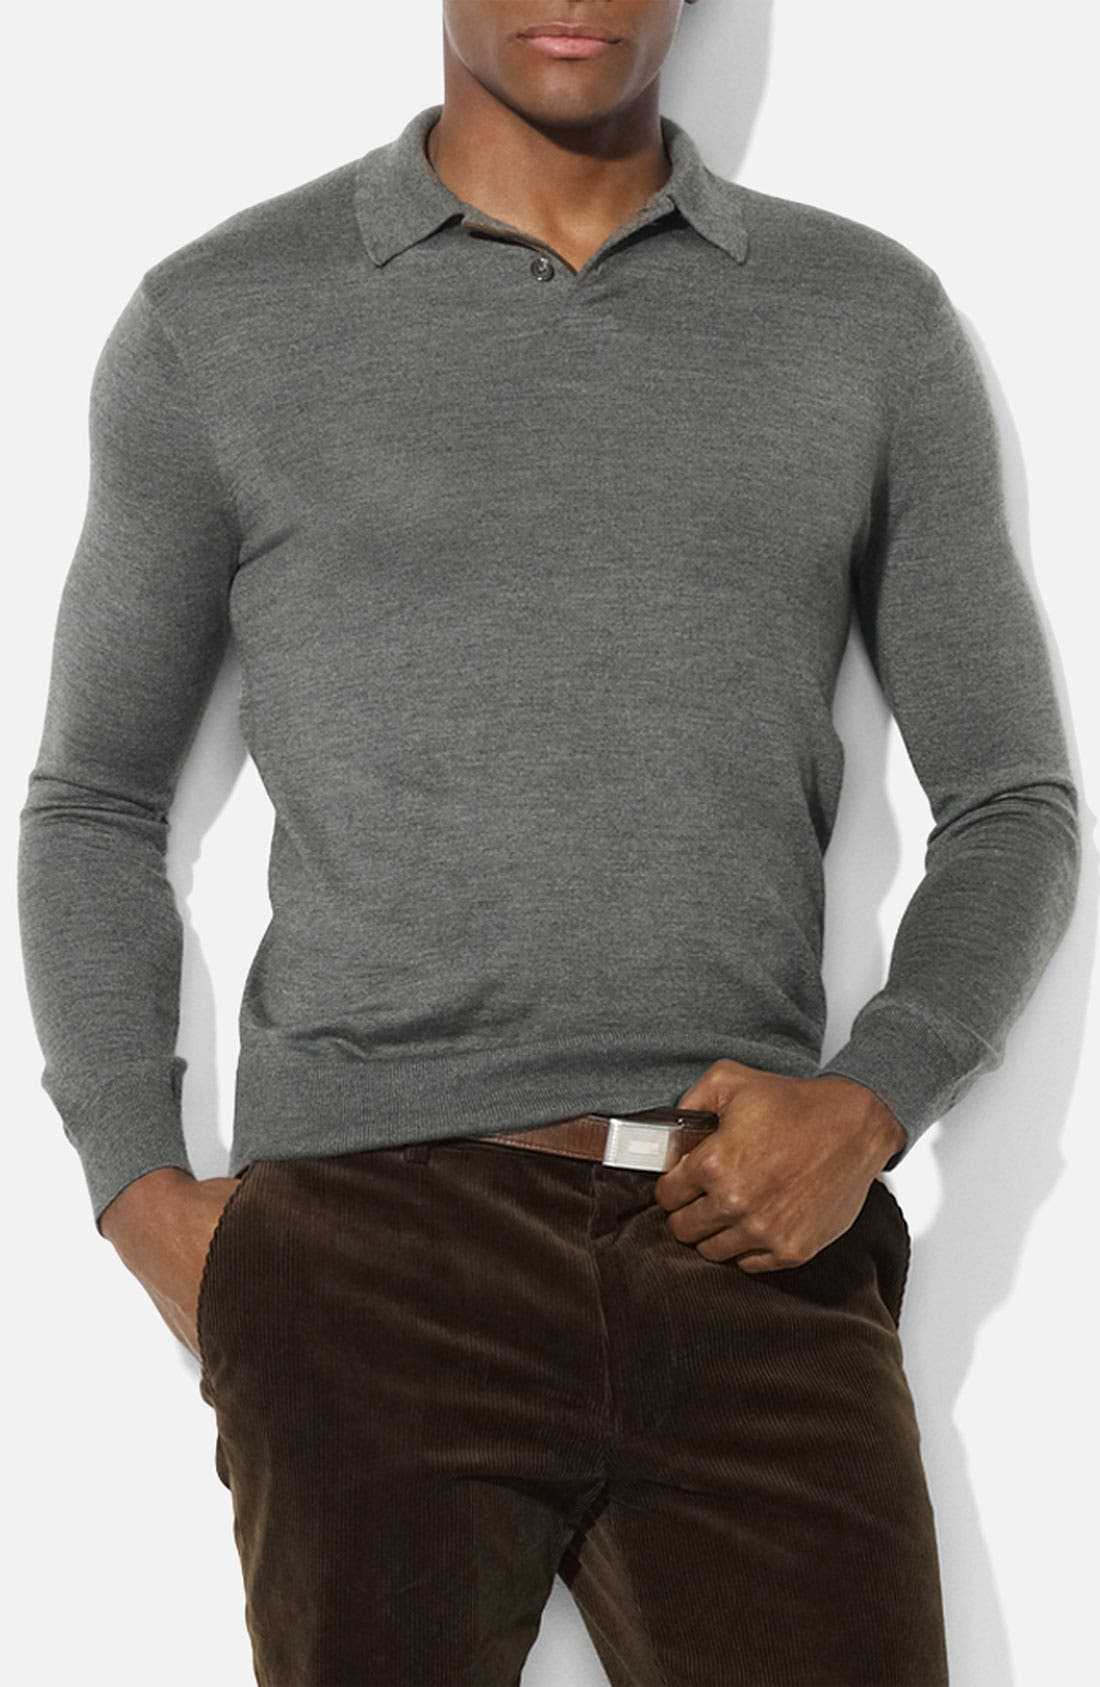 Main Image - Polo Ralph Lauren Trim Fit Polo Sweater